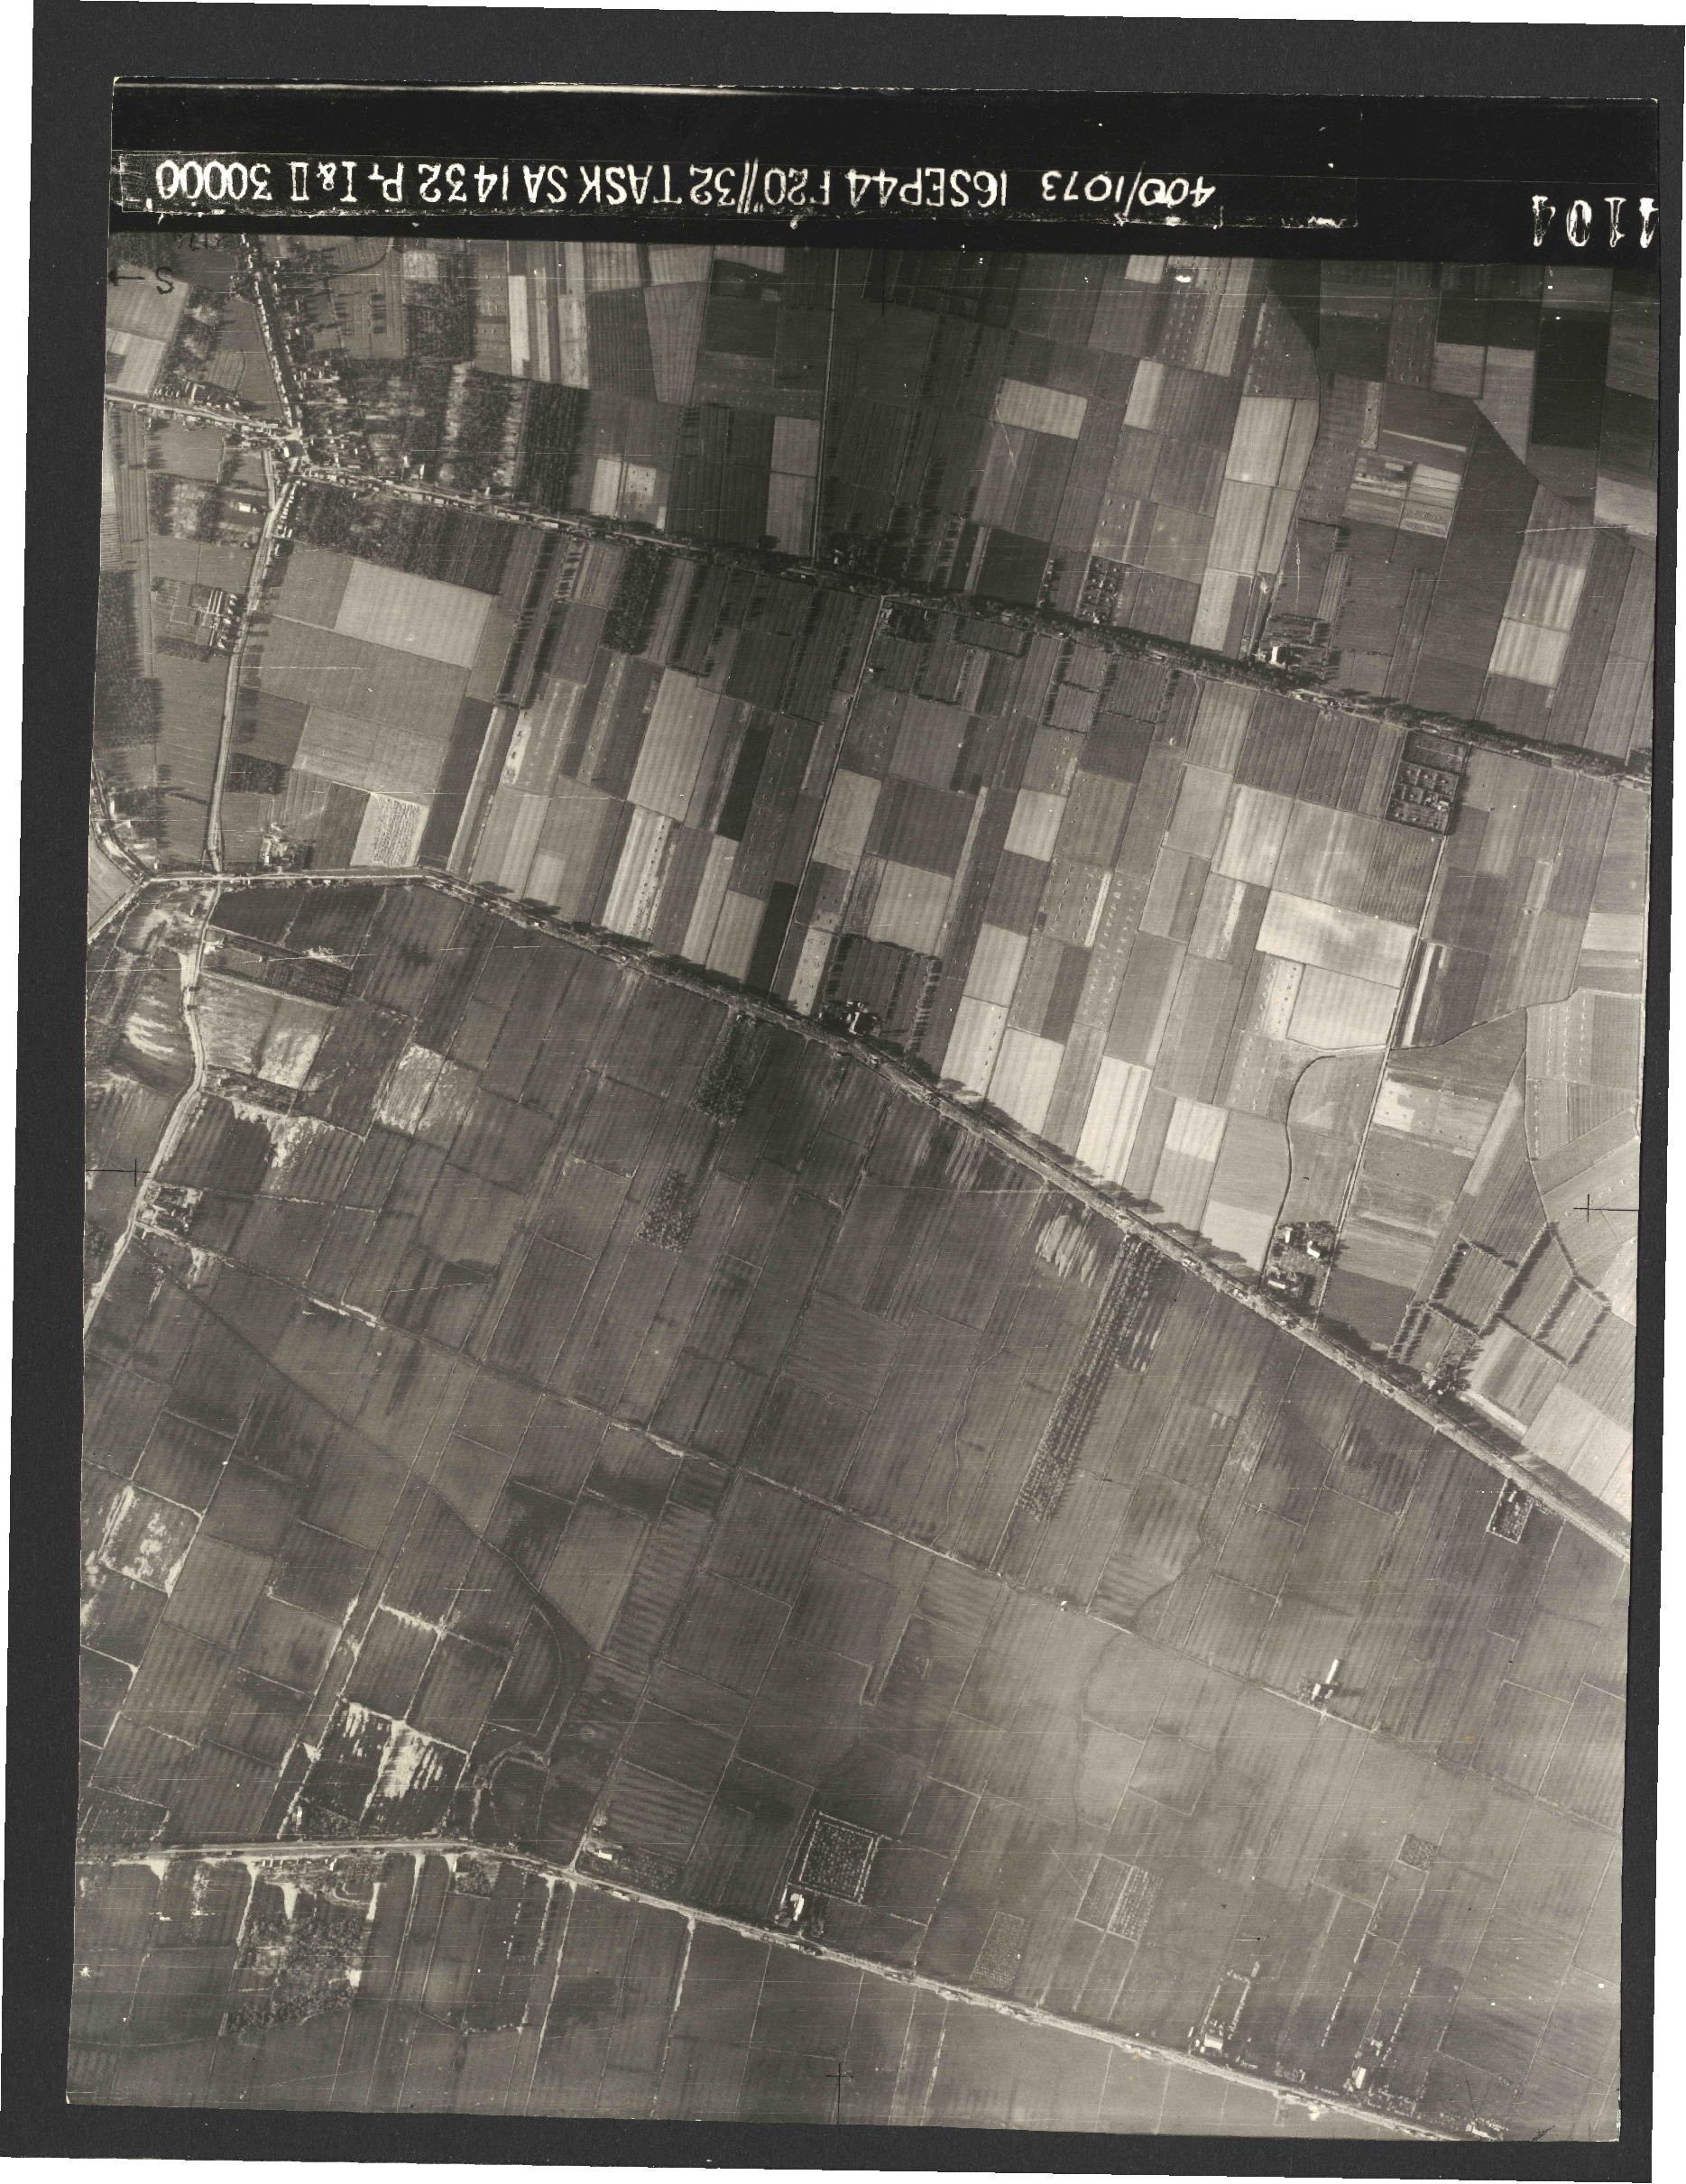 Collection RAF aerial photos 1940-1945 - flight 013, run 04, photo 4104